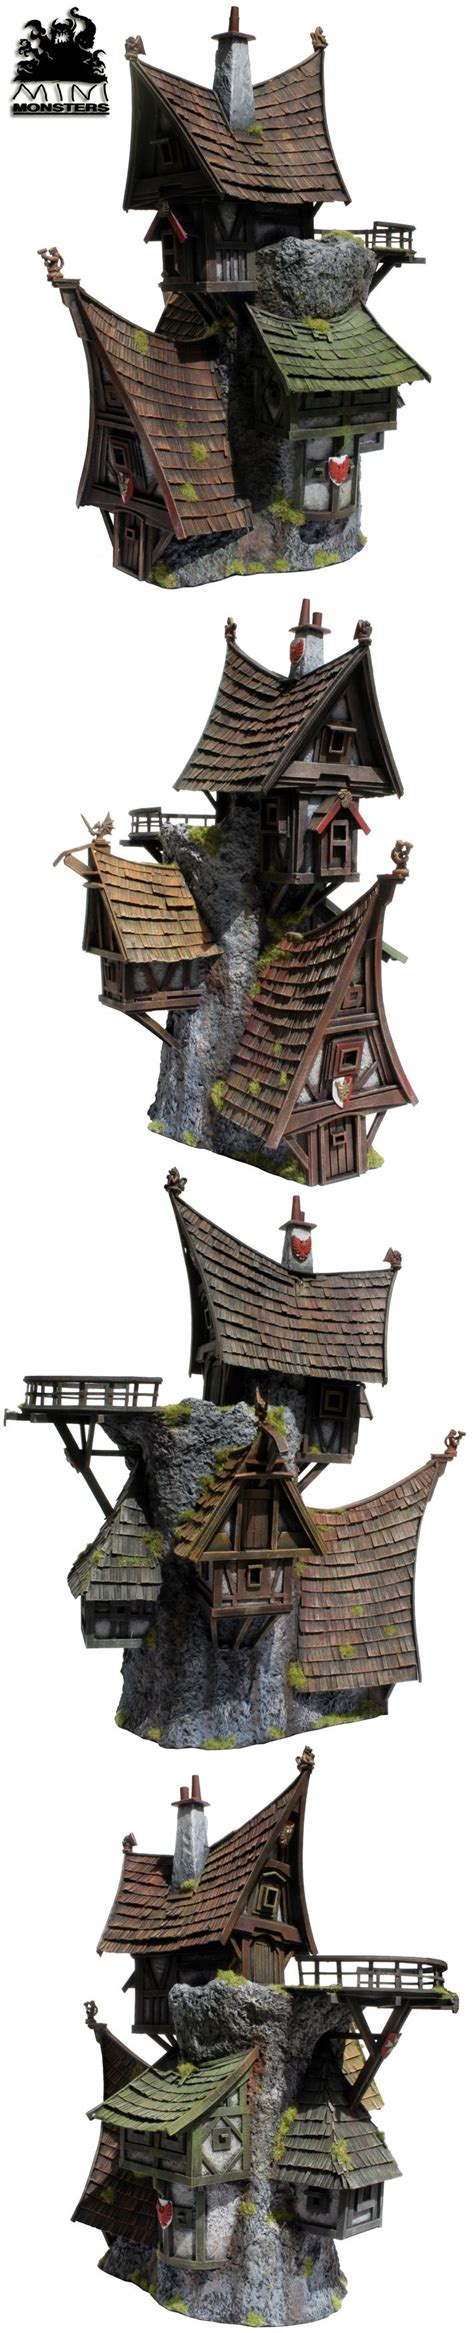 wizard fantasy medieval houses concept mini 3d empire warhammer game miniature wizards environment monsters building level terrain monster games nha